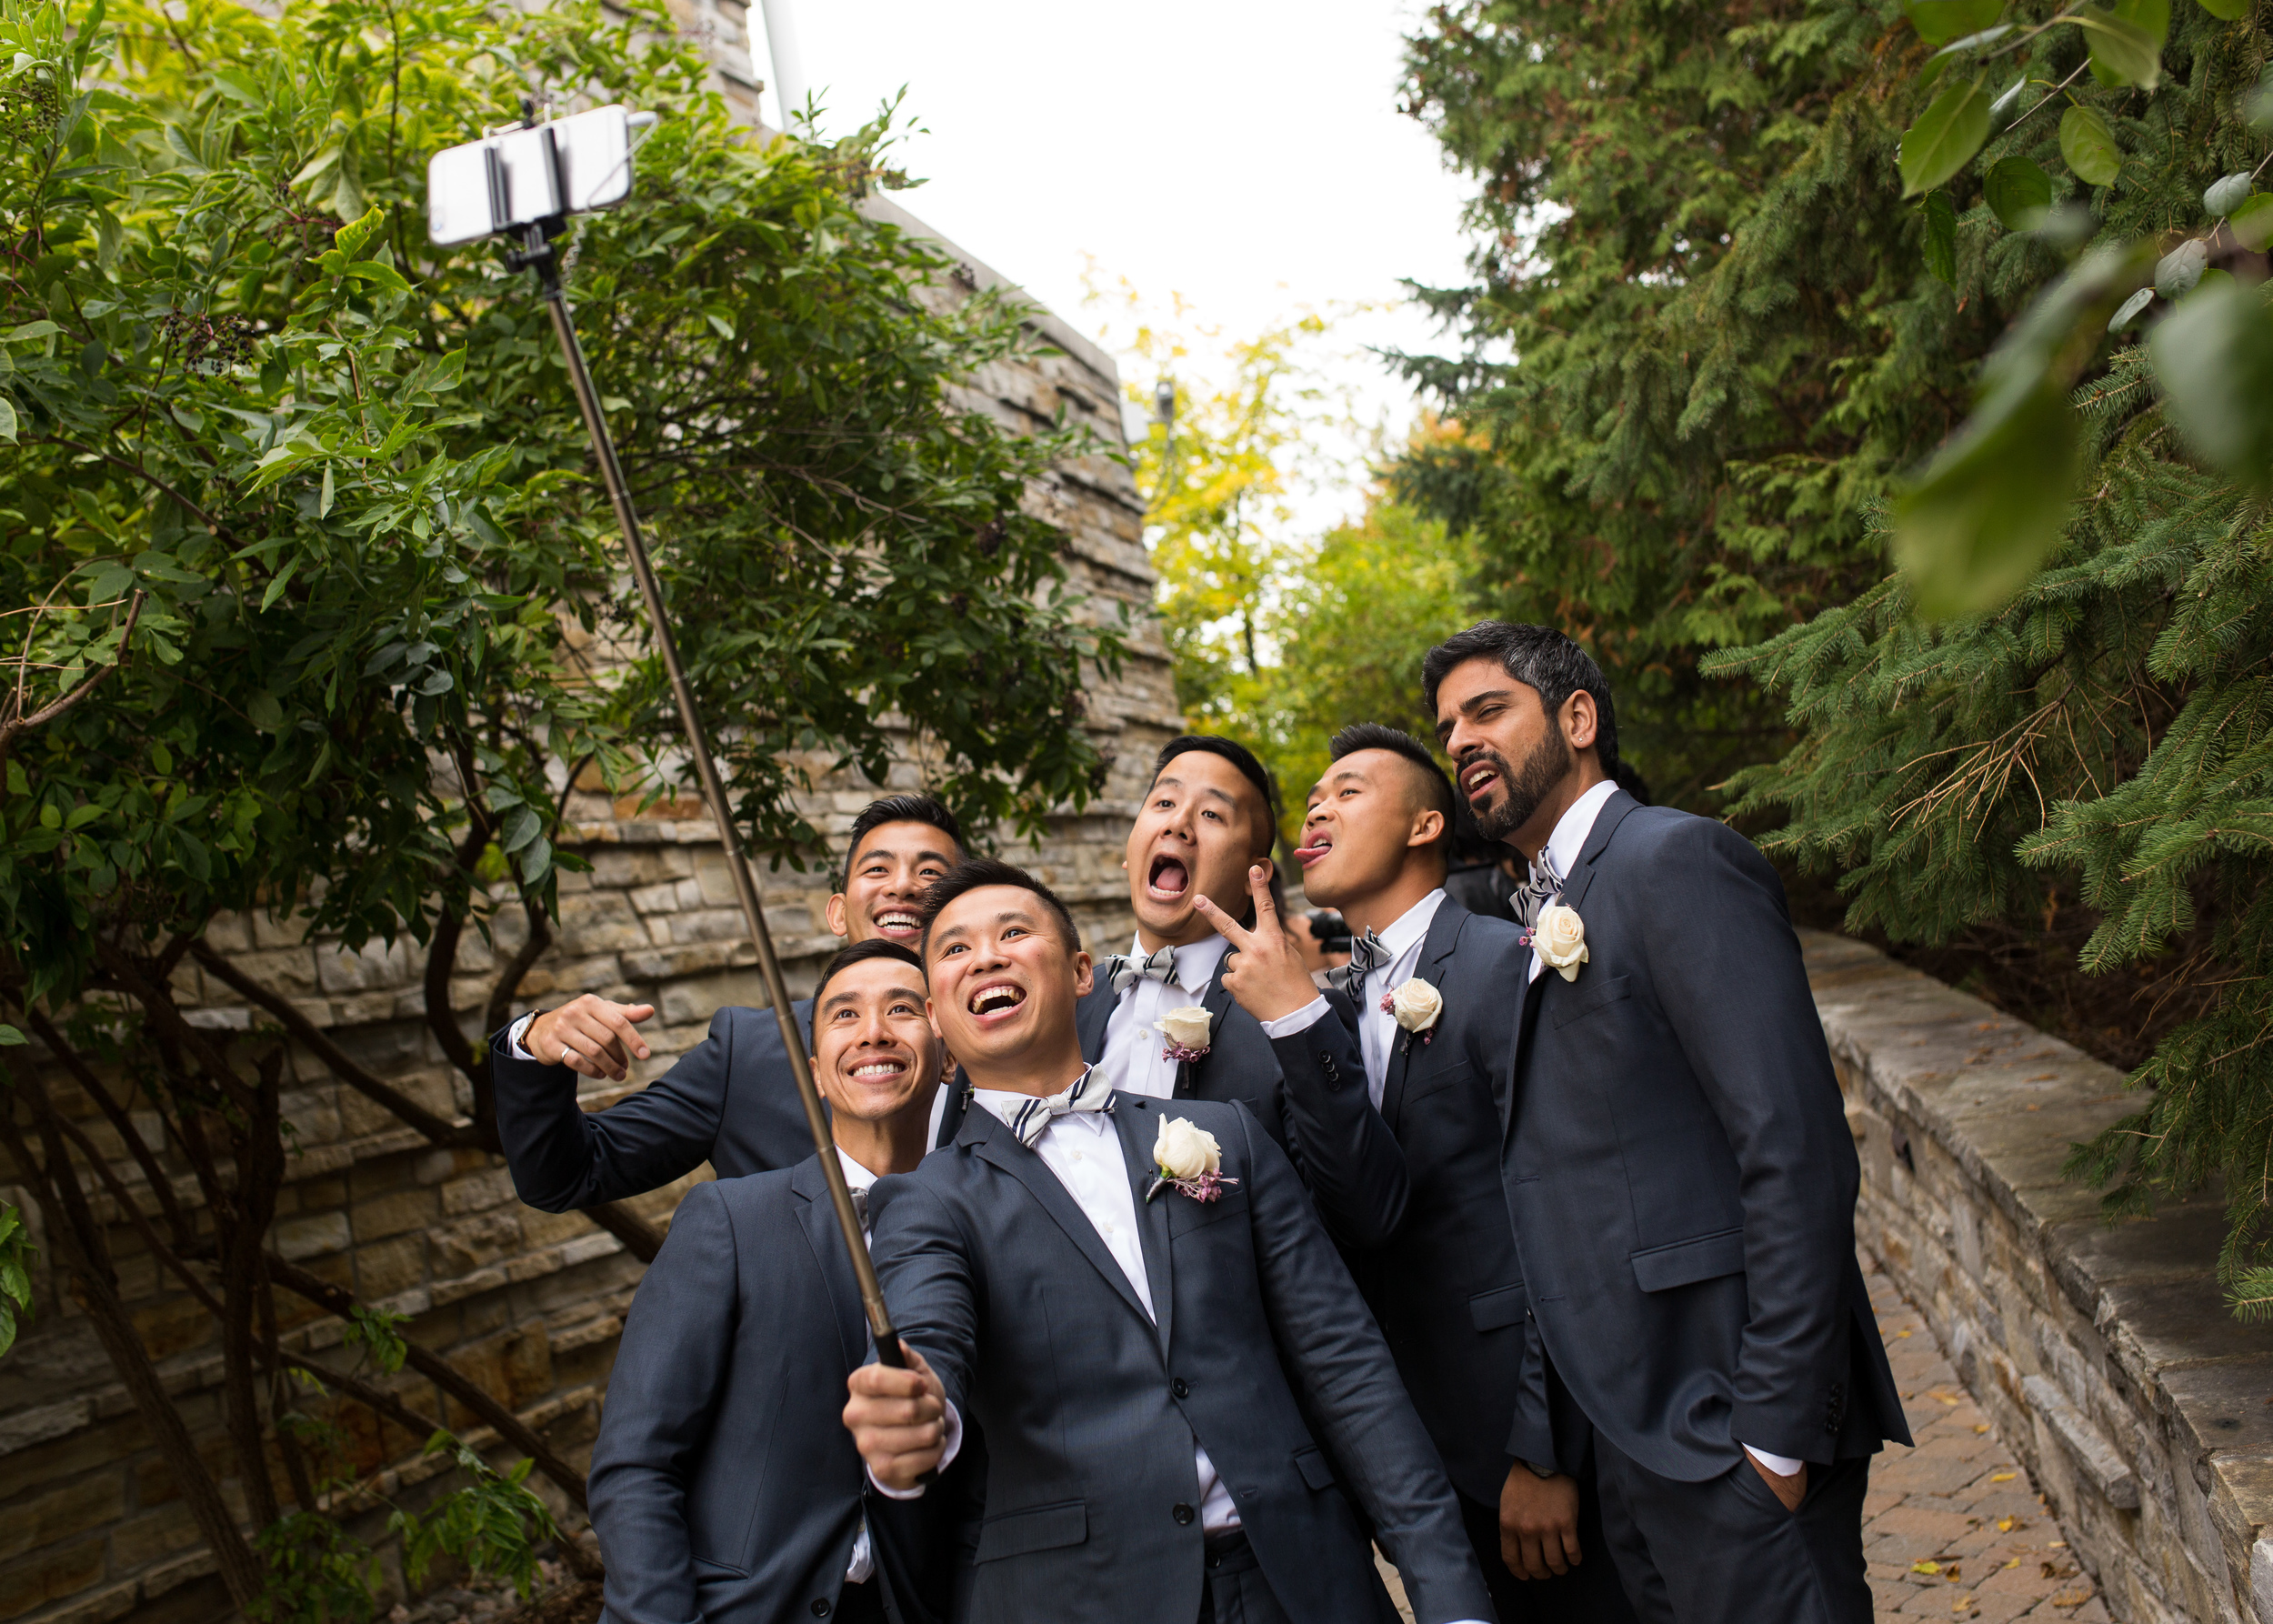 A photo of the groom and his groomsmen taking a selfie